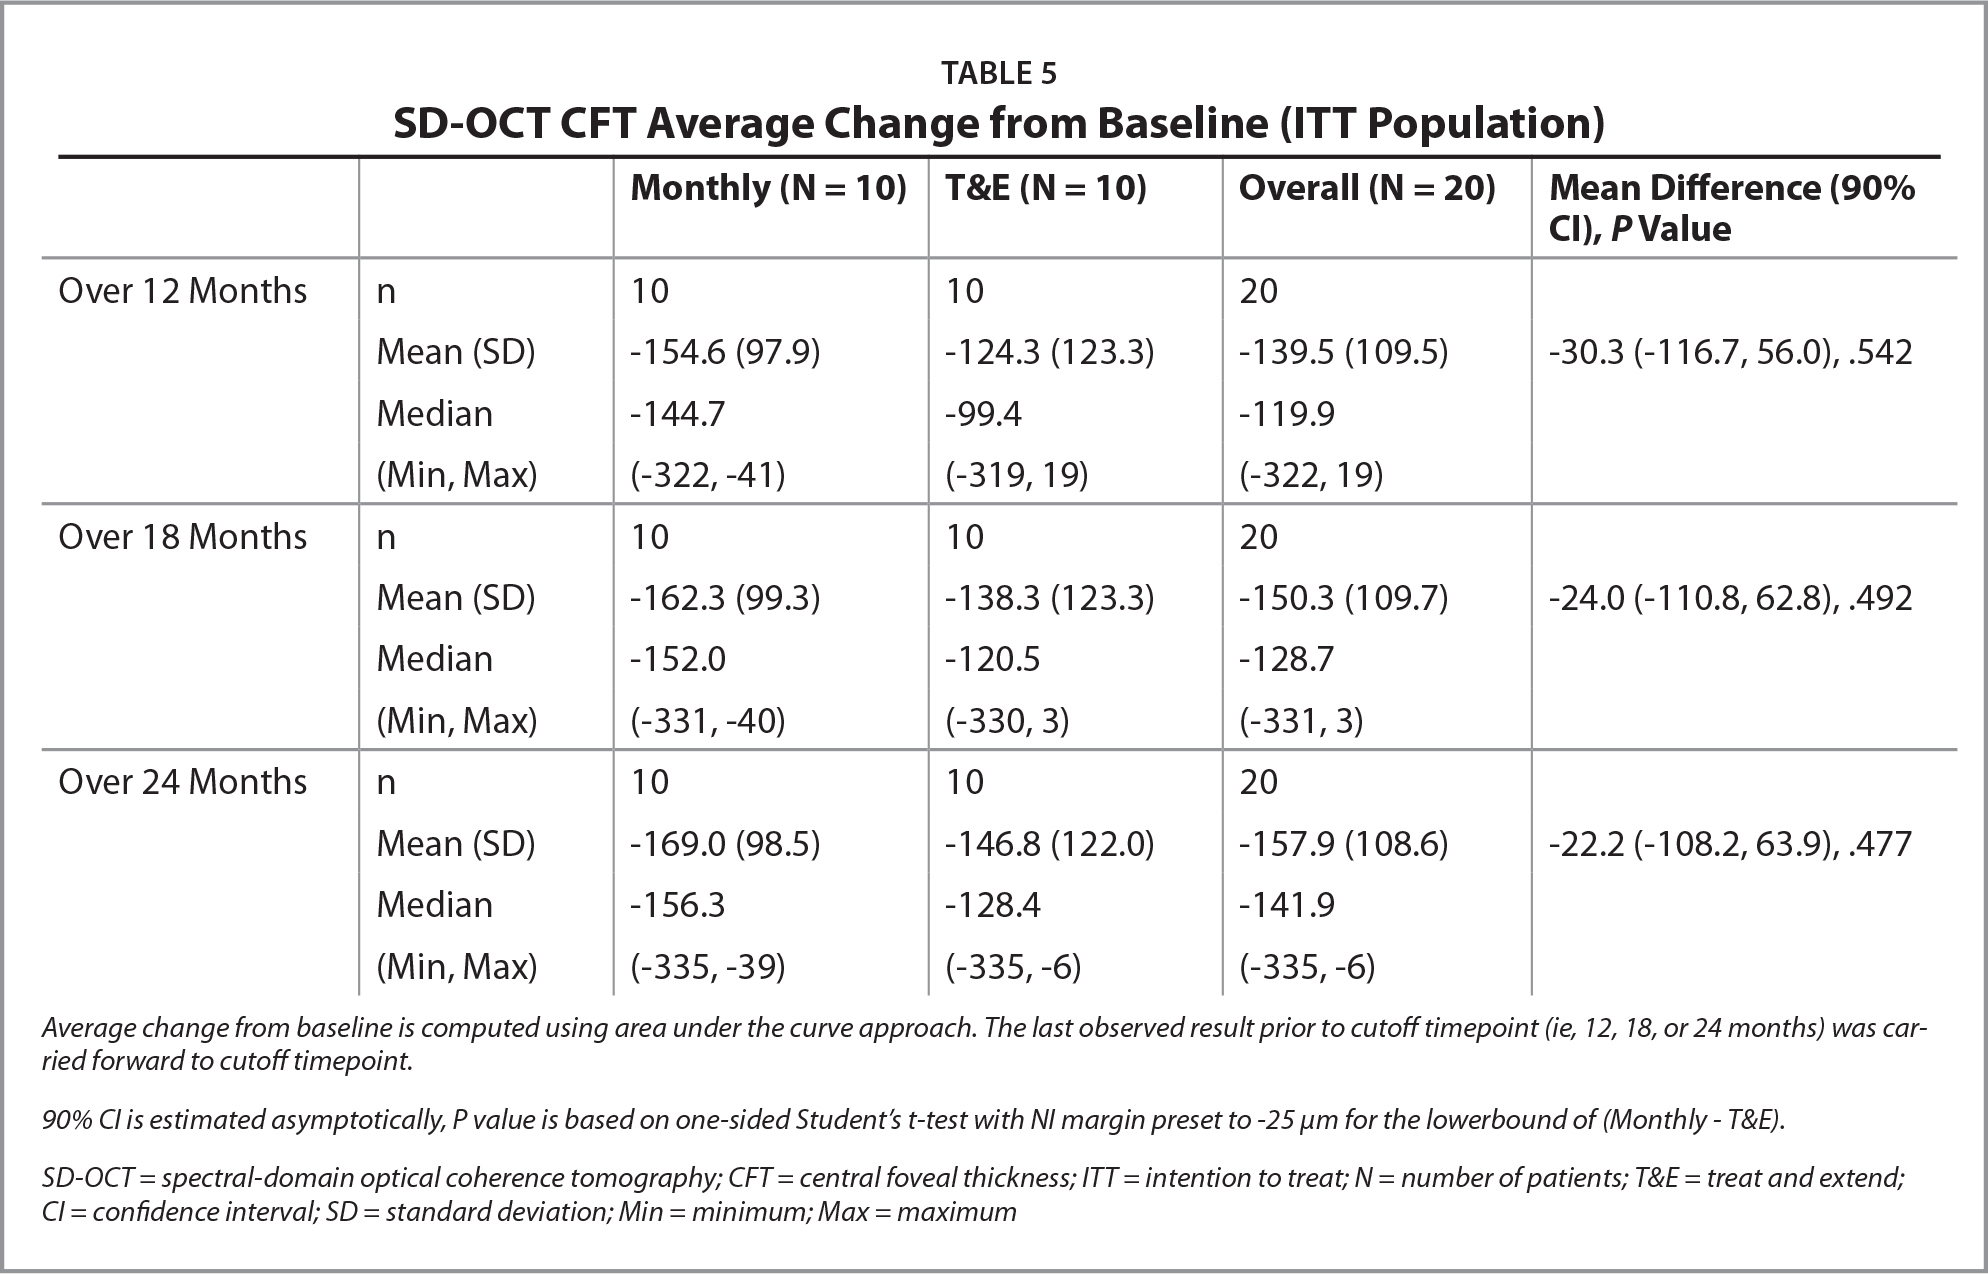 SD-OCT CFT Average Change from Baseline (ITT Population)